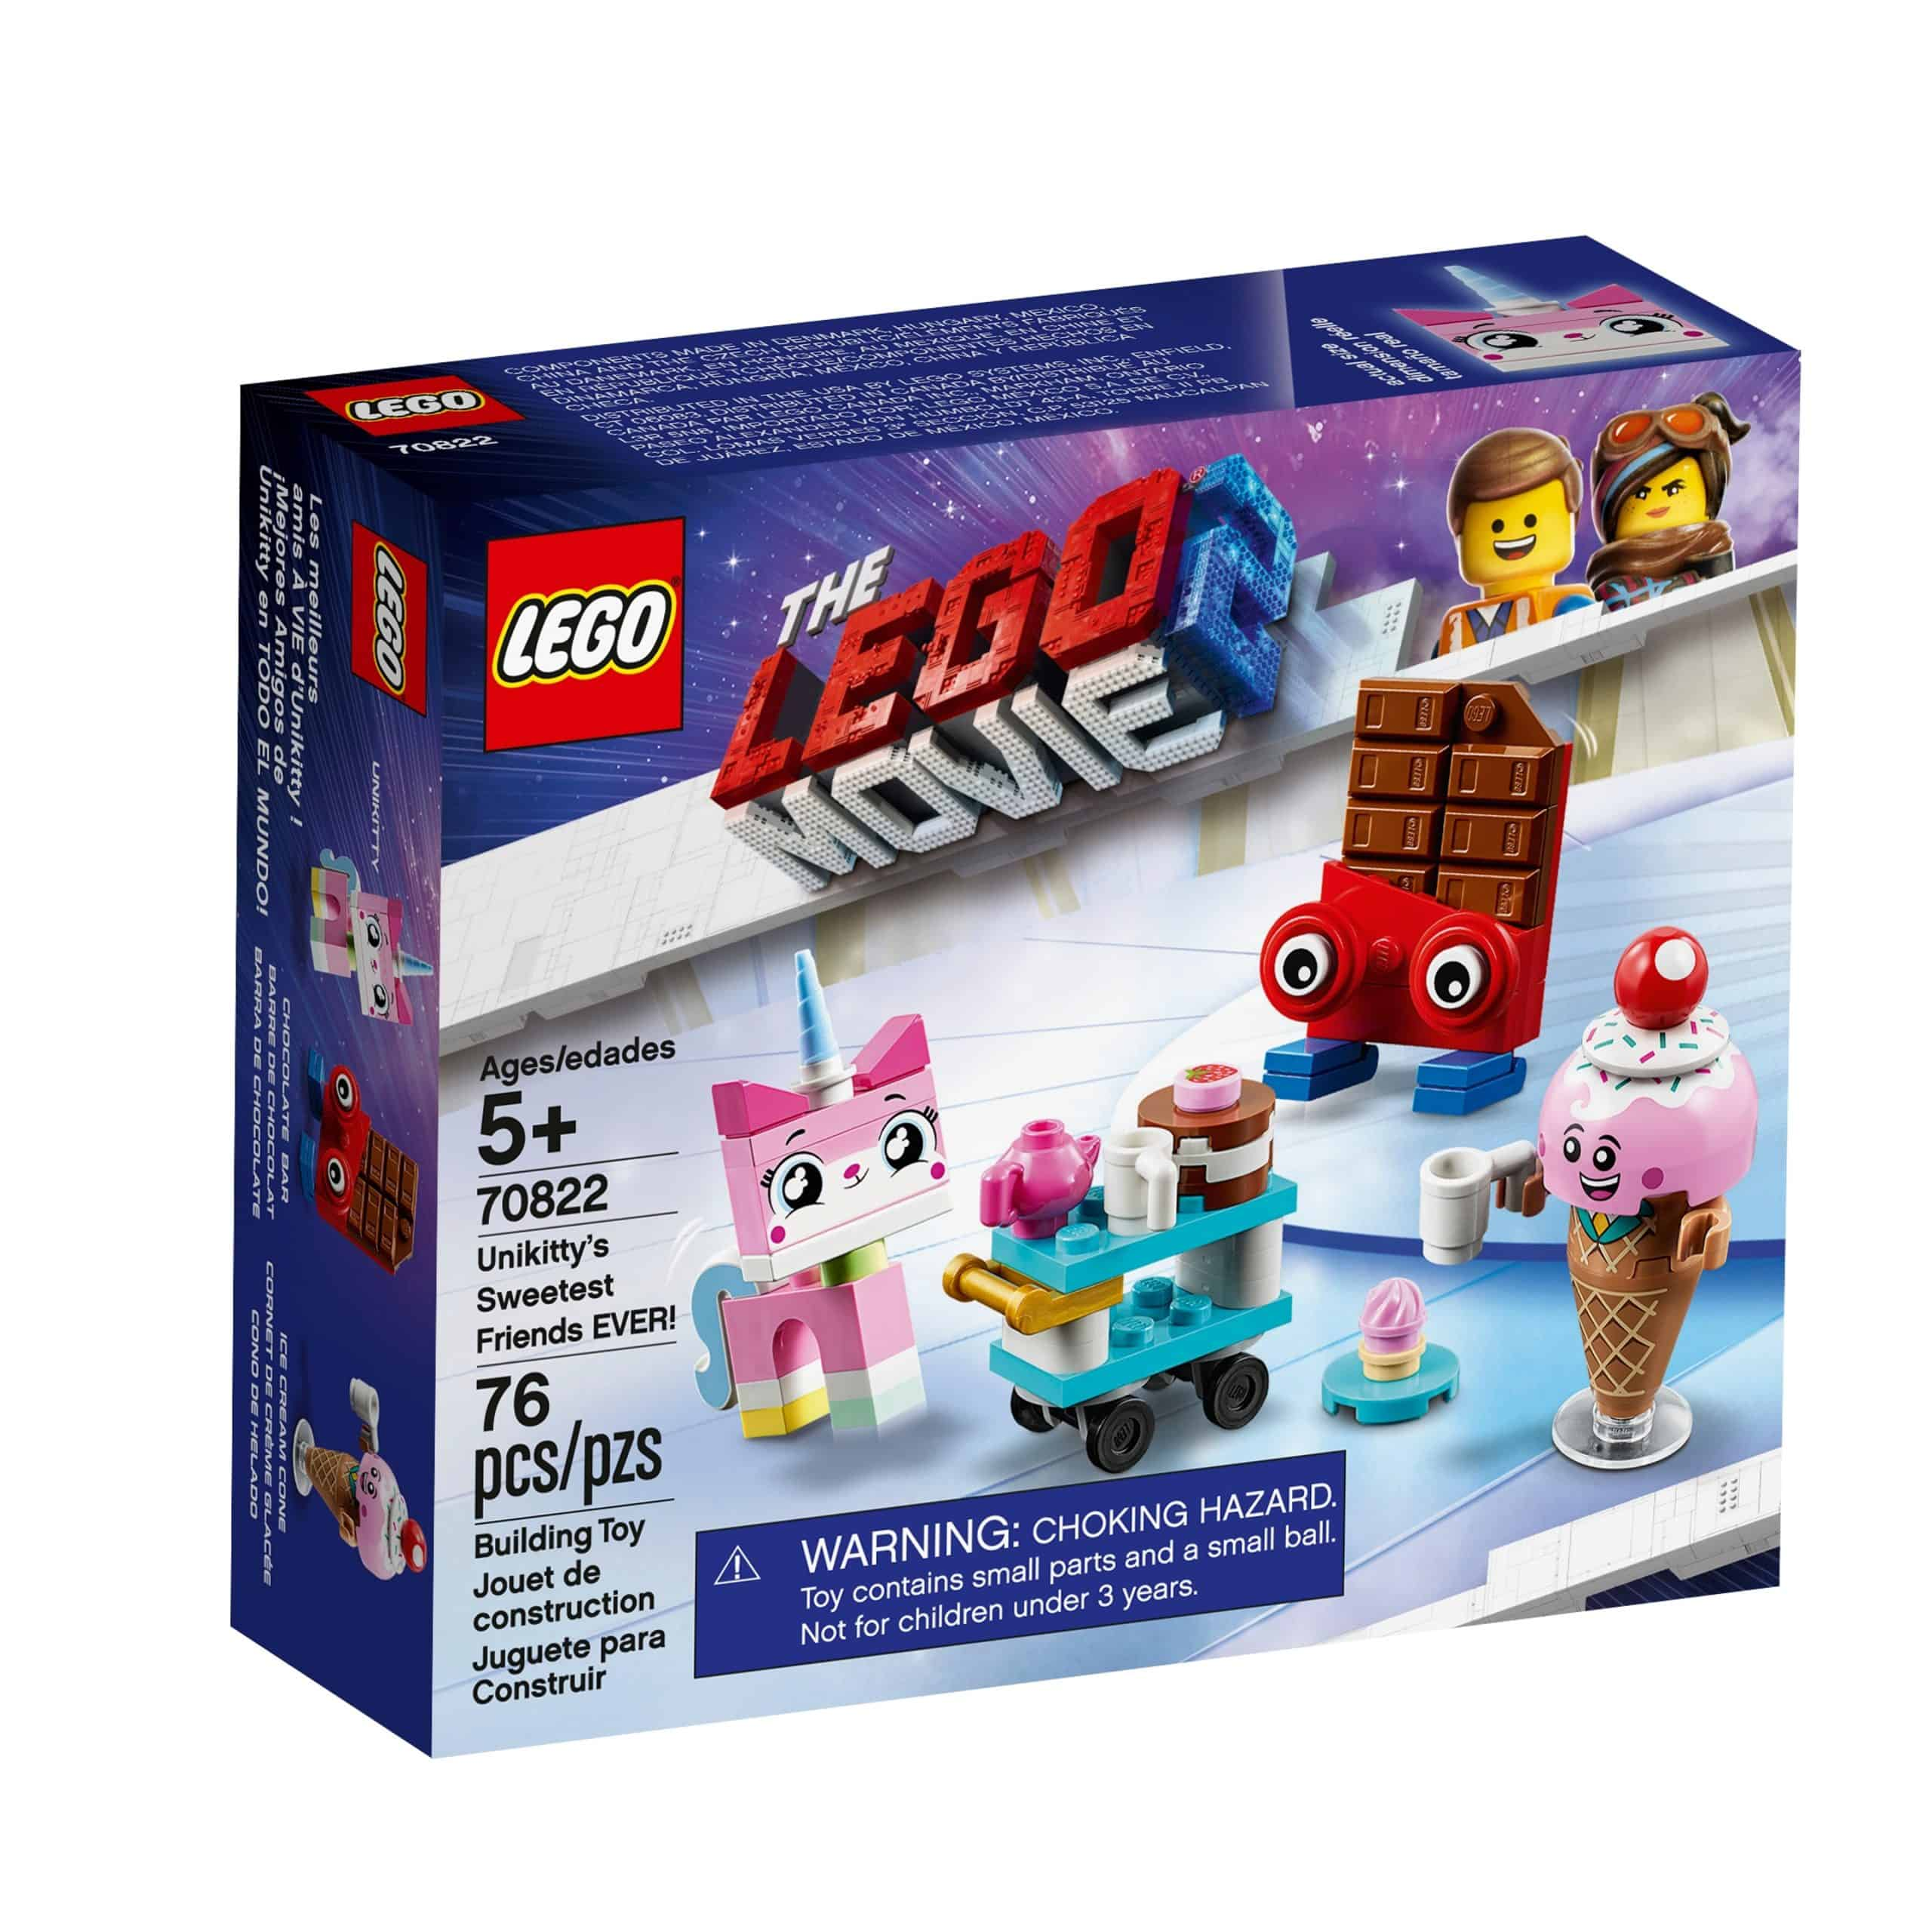 lego 70822 les meilleurs amis dunikitty scaled